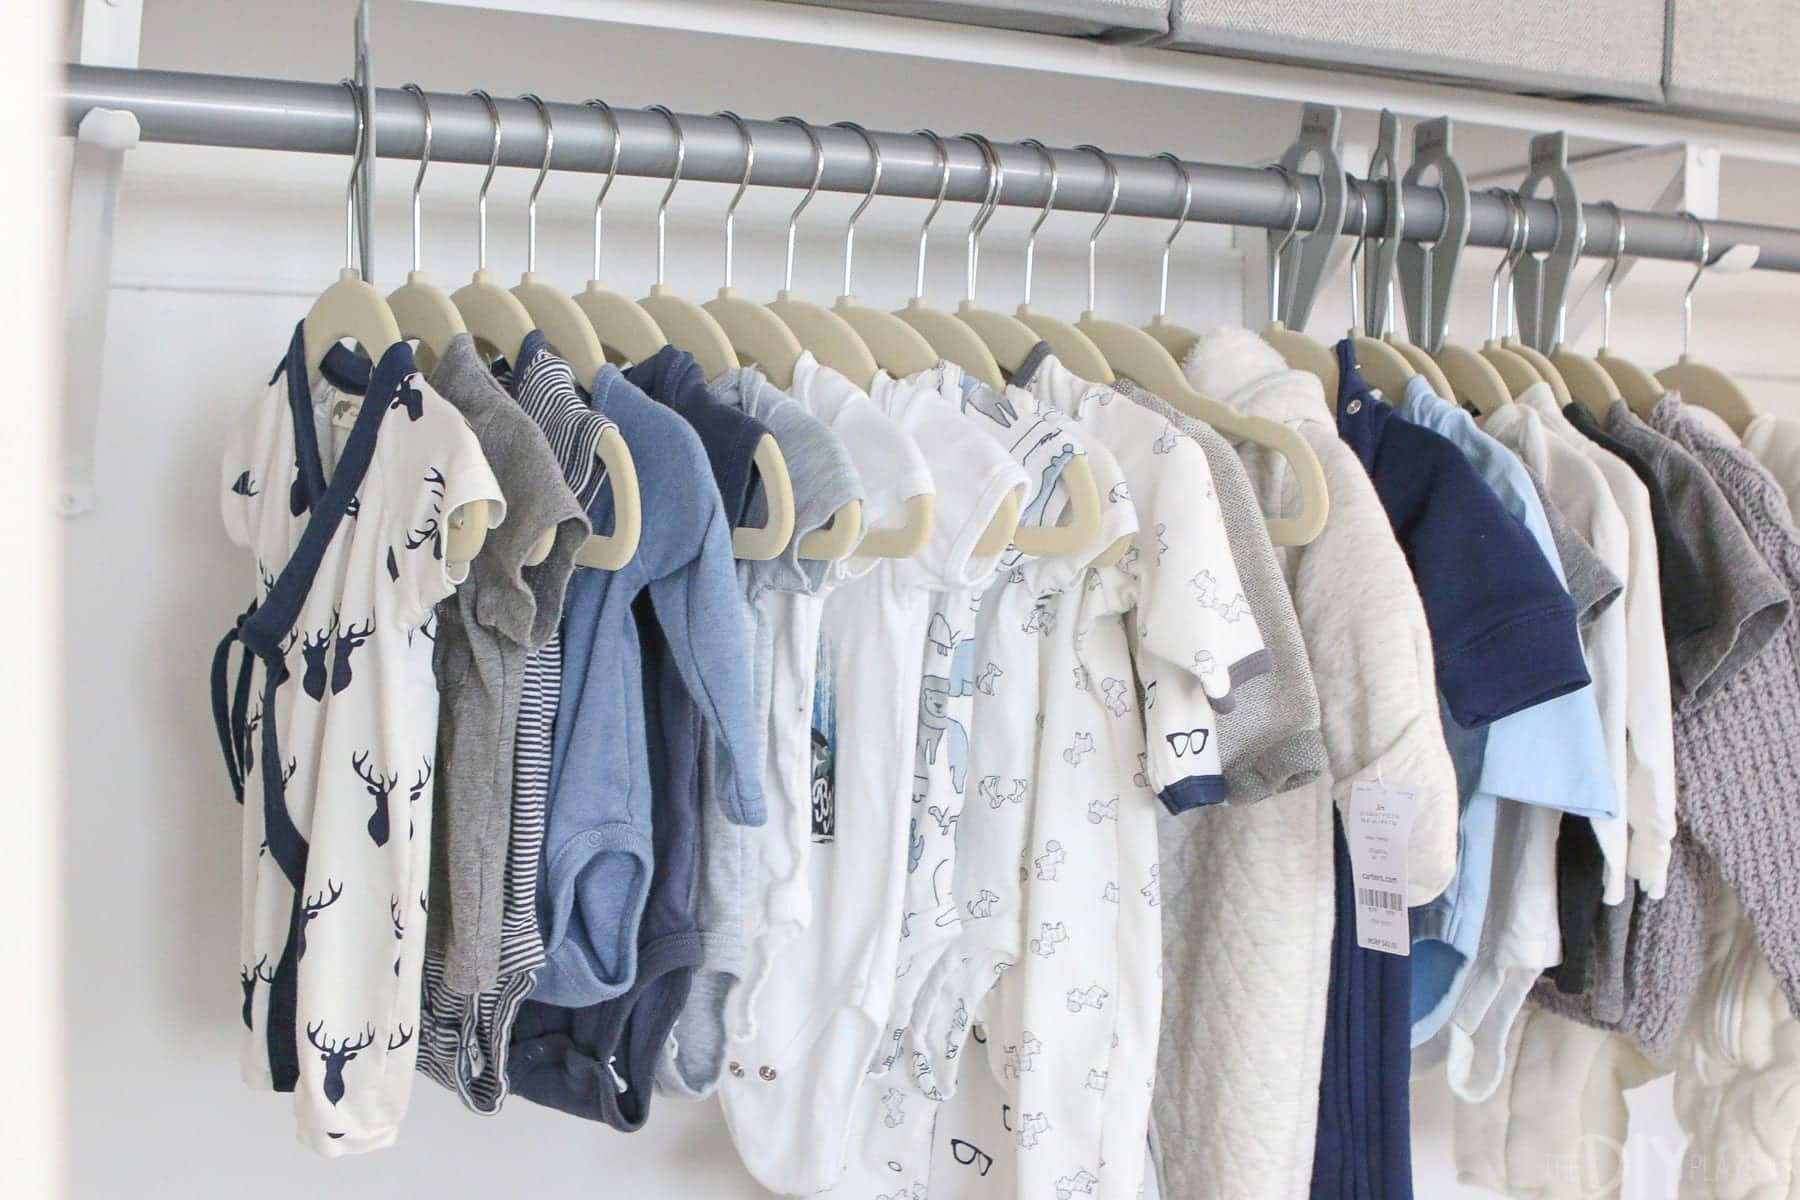 Hanging all the baby clothes is a great way to stay organized.